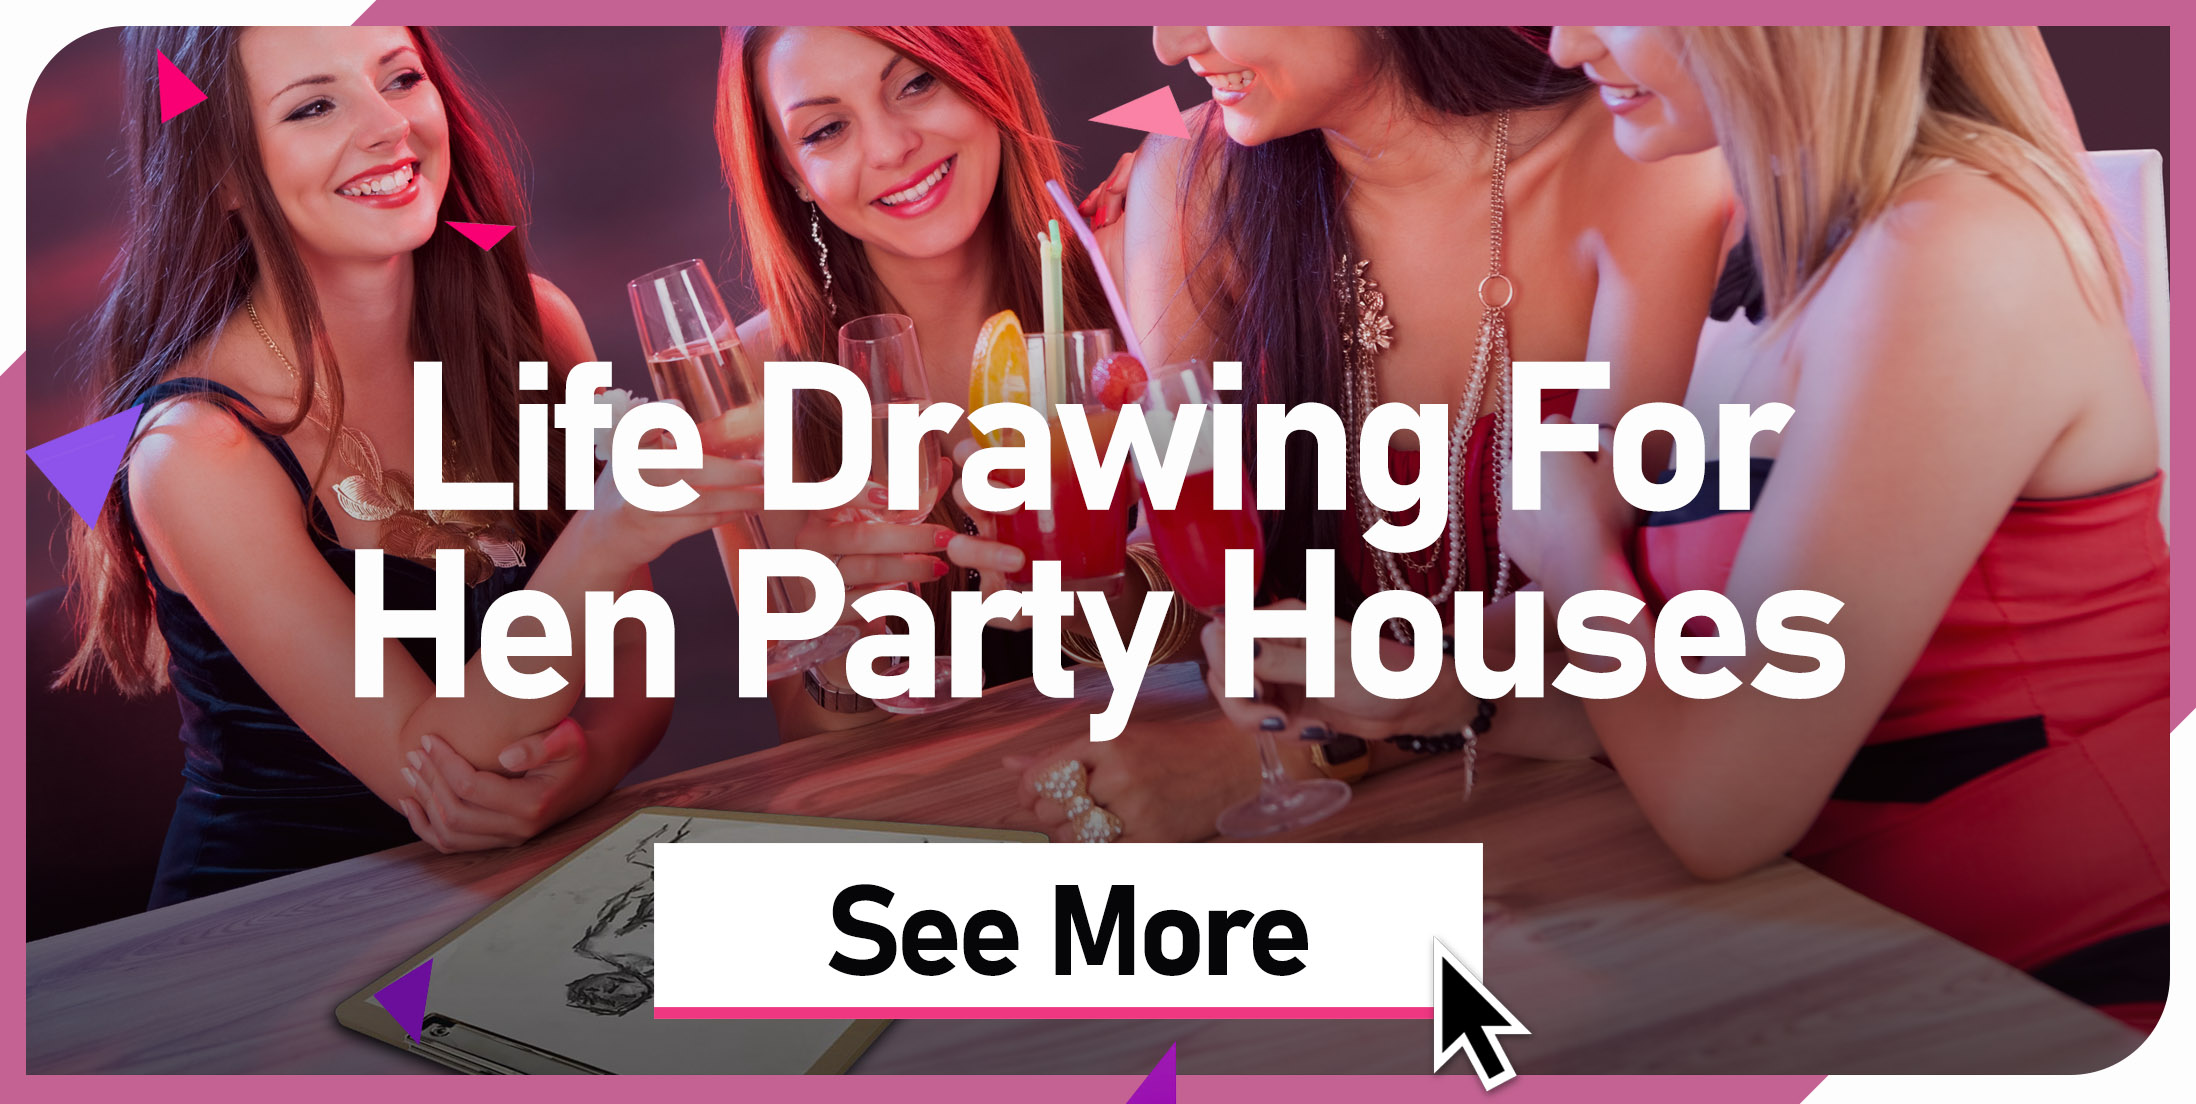 Life Drawing For Hen Party Houses